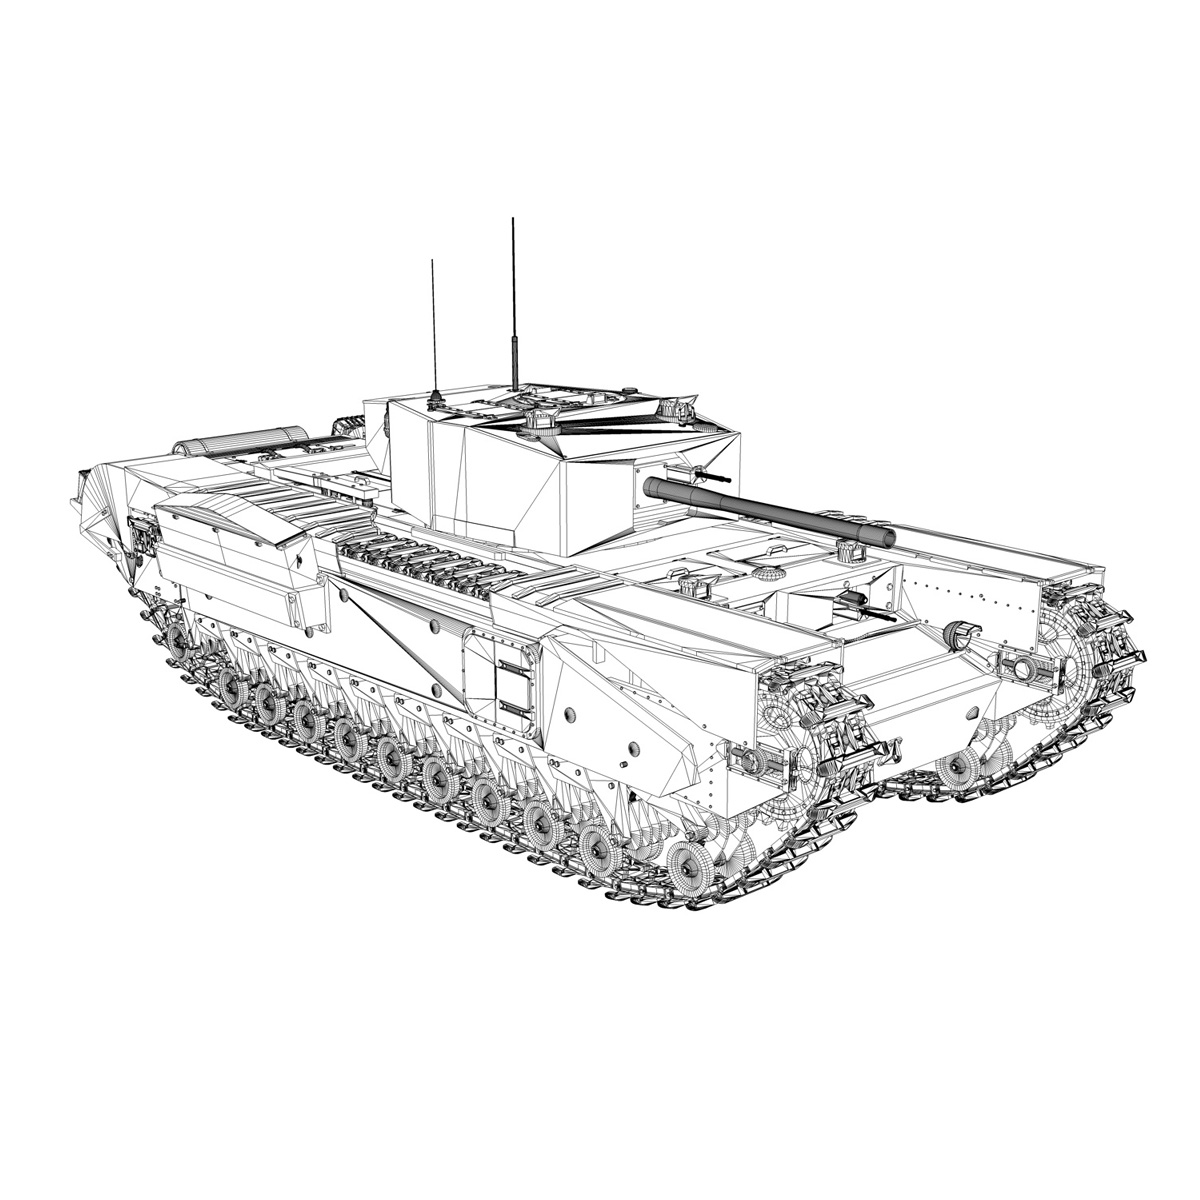 churchill mk iii - 517 - soviet army 3d загвар 3ds fbx c4d lwo obj 272985